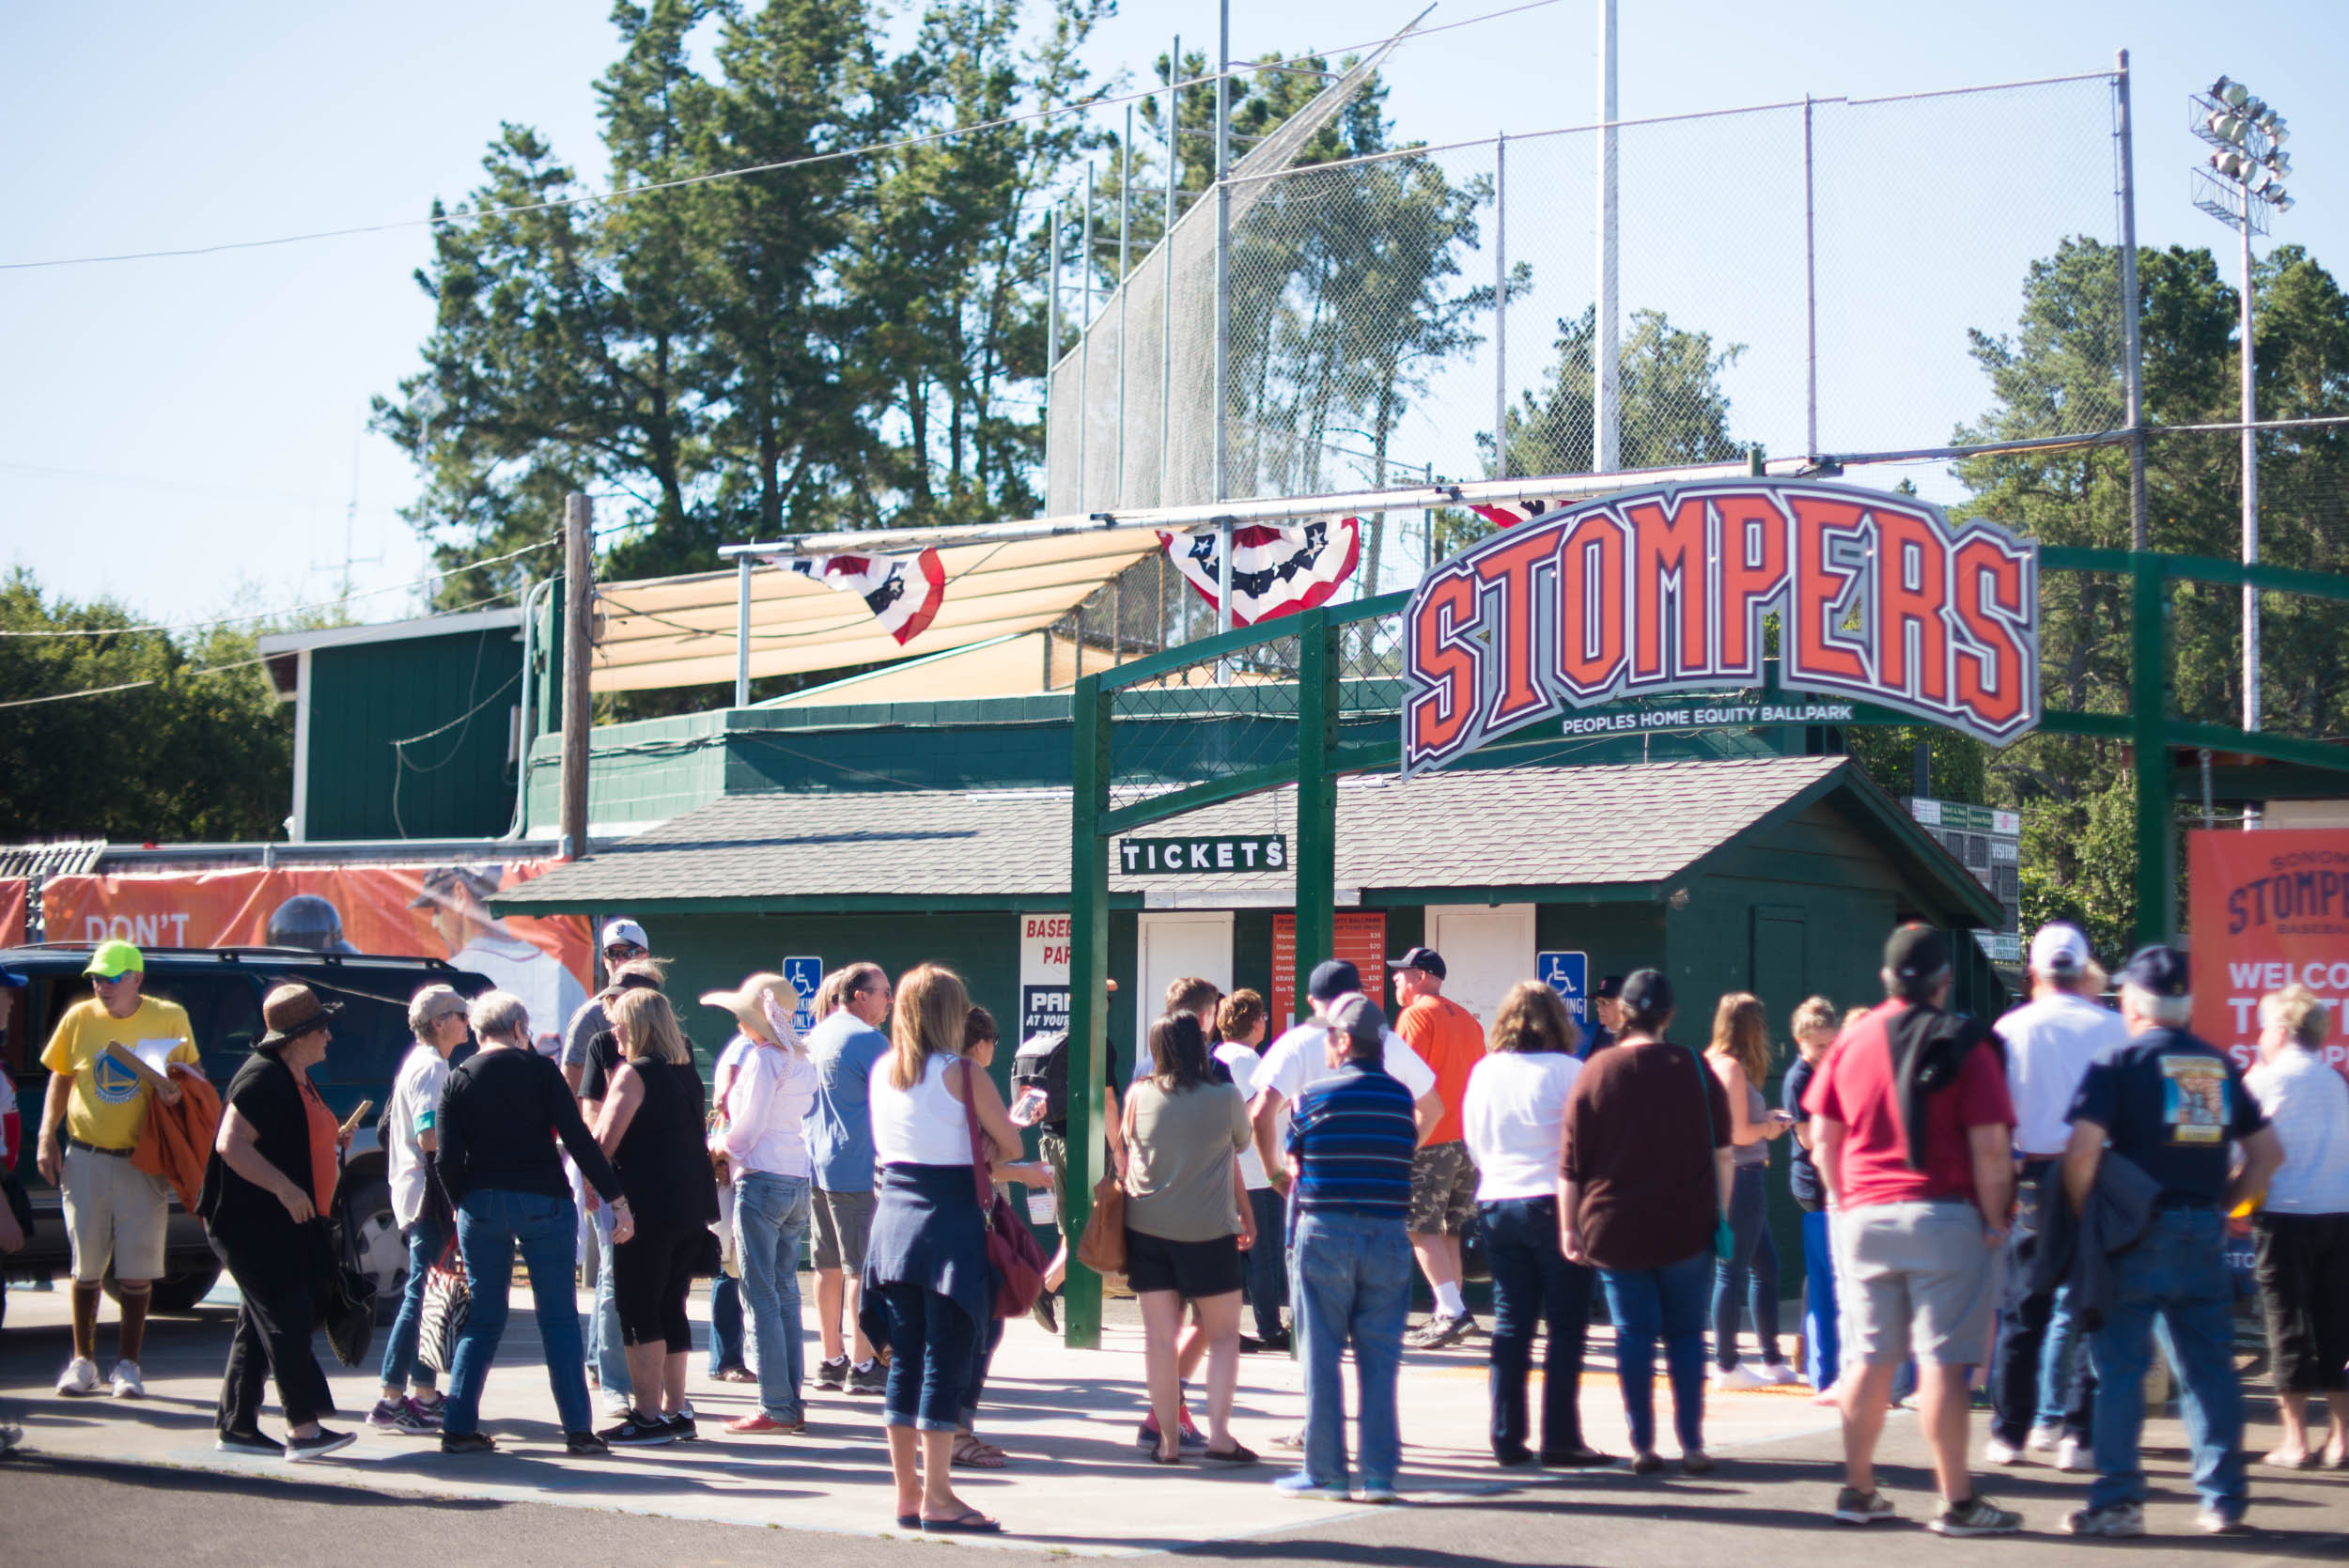 Stompers fans congregate outside of Peoples Home Equity Ballpark at Arnold Field before a 2017 Stompers game. (Darcy Dellera / Sonoma Stompers)